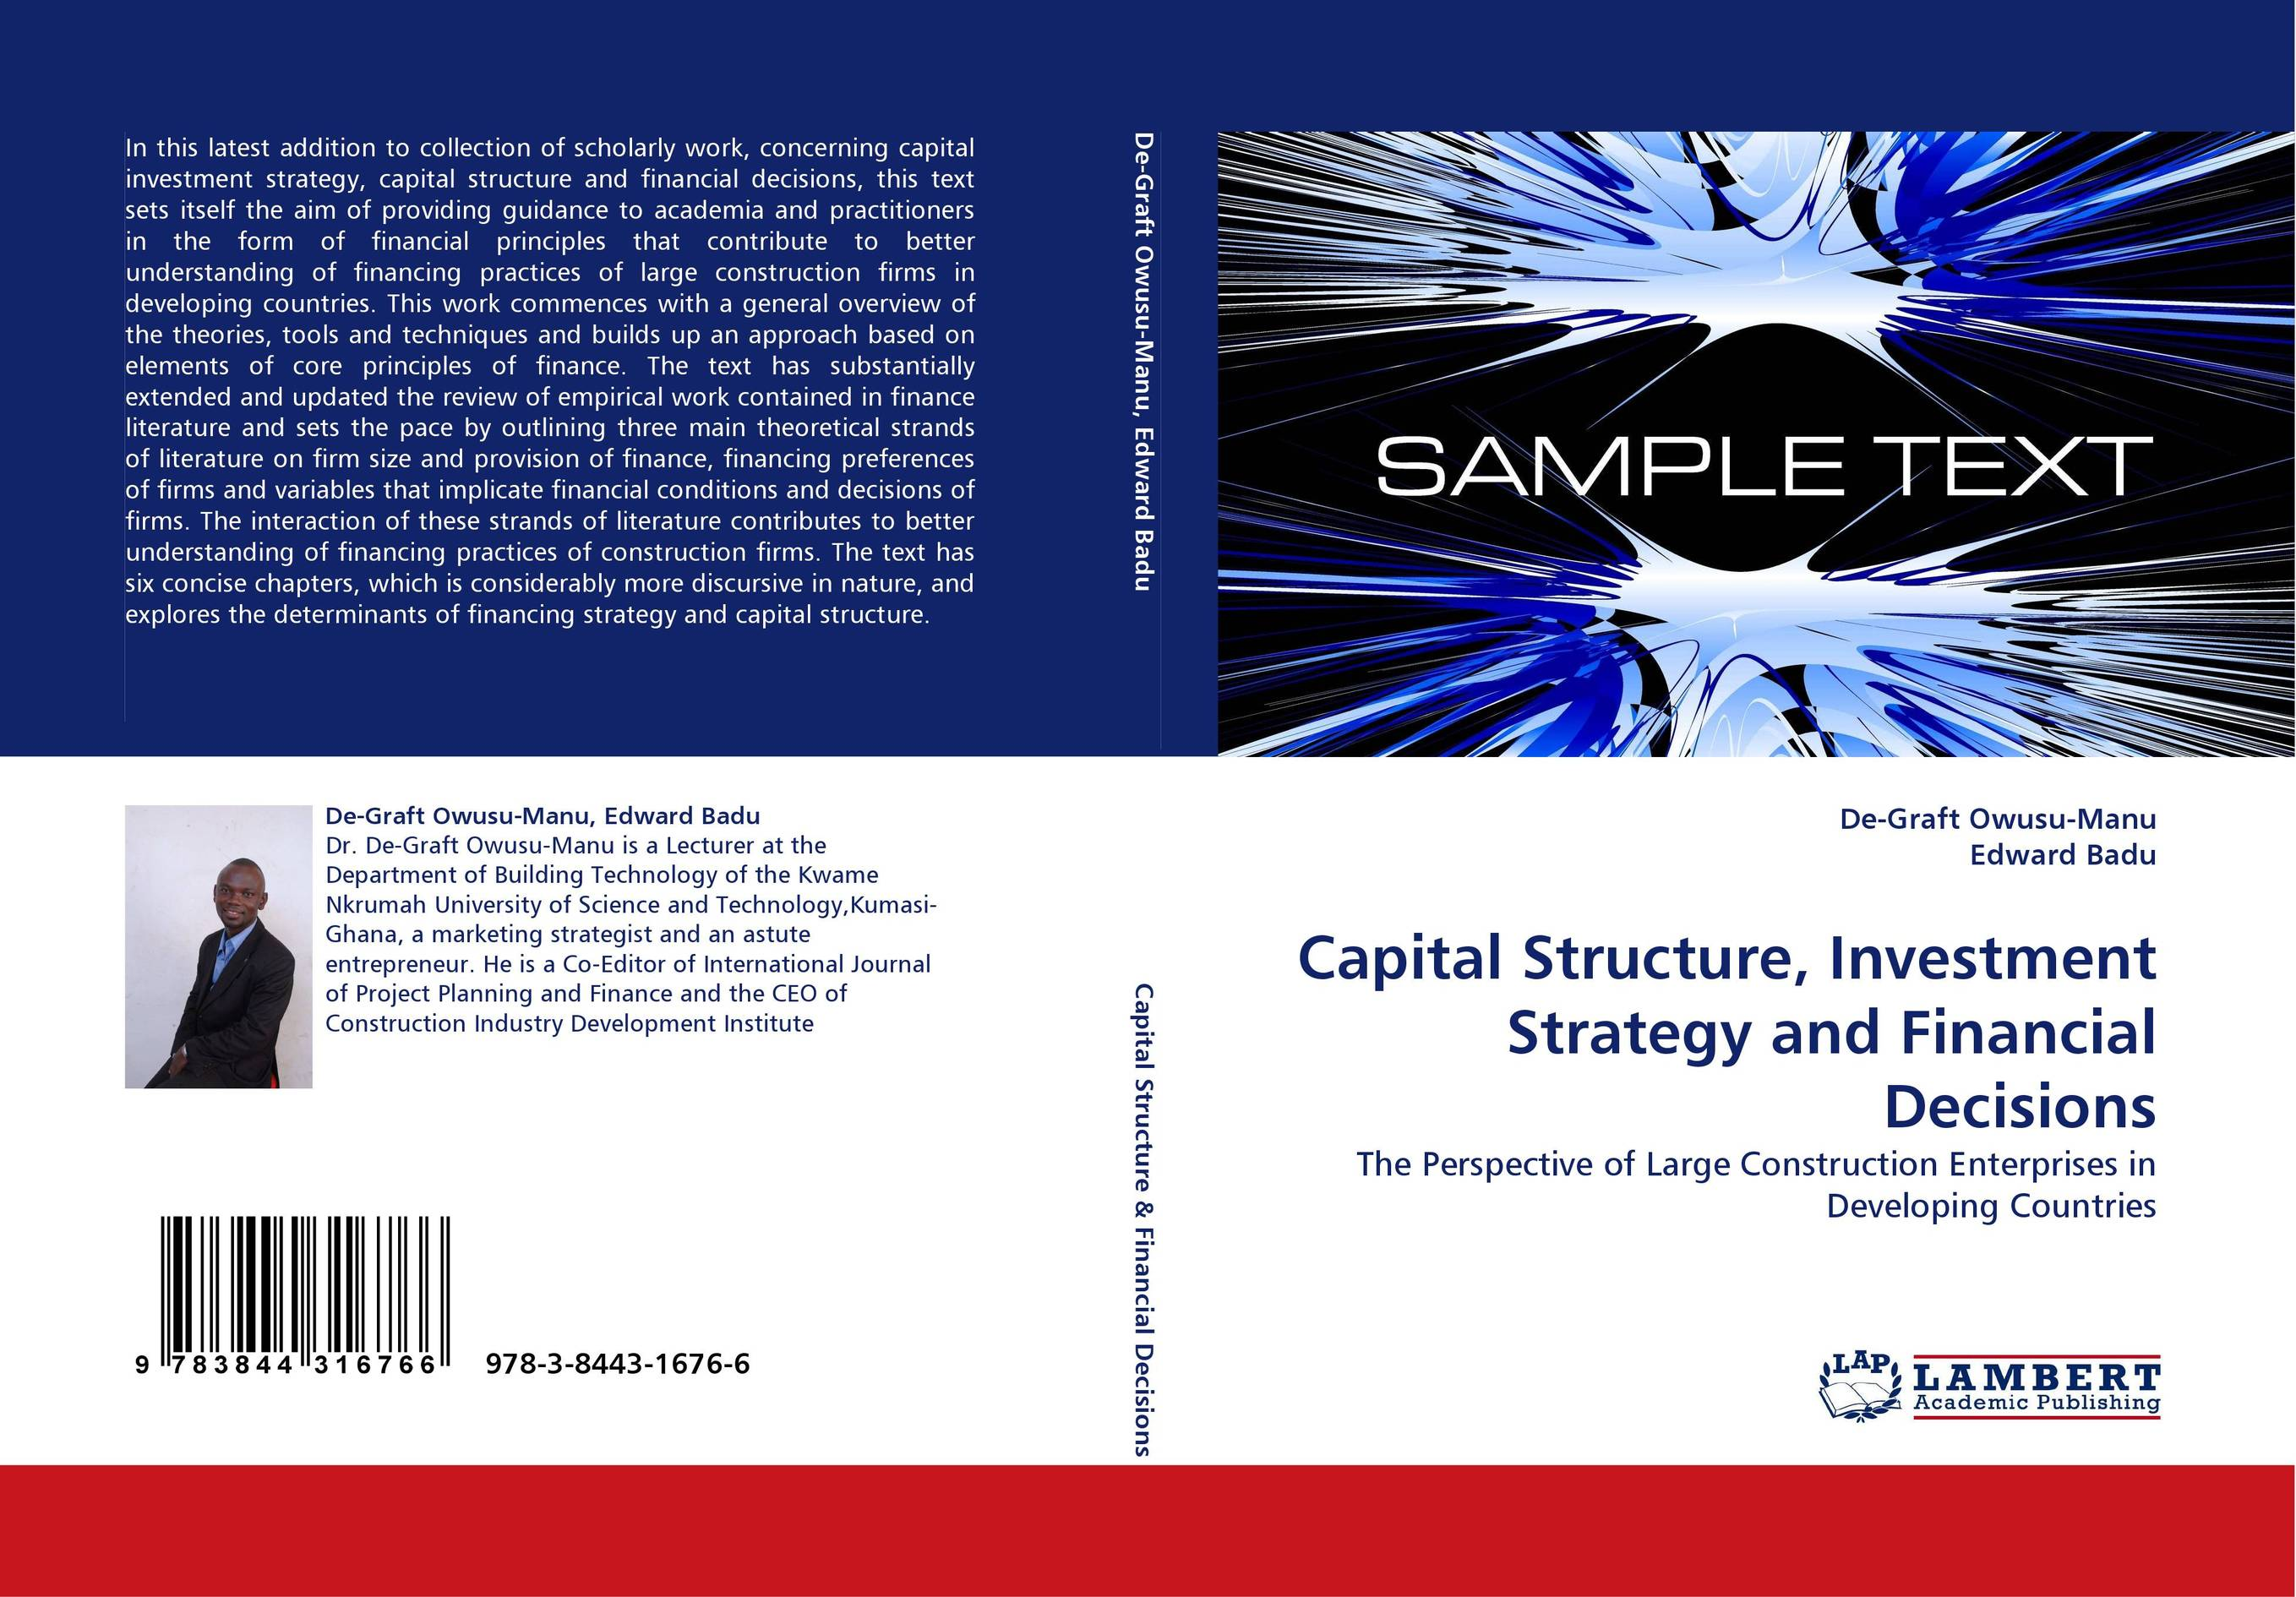 the theories and implications on corporate financial decisions finance essay Yet, finance is somewhat unique in terms of the correspondence between theory and evidence students should be driven to appreciate the significance of the theory's implications in the real if the potential contribution of financial decision theory is largely indirect, as fama and miller (1972.